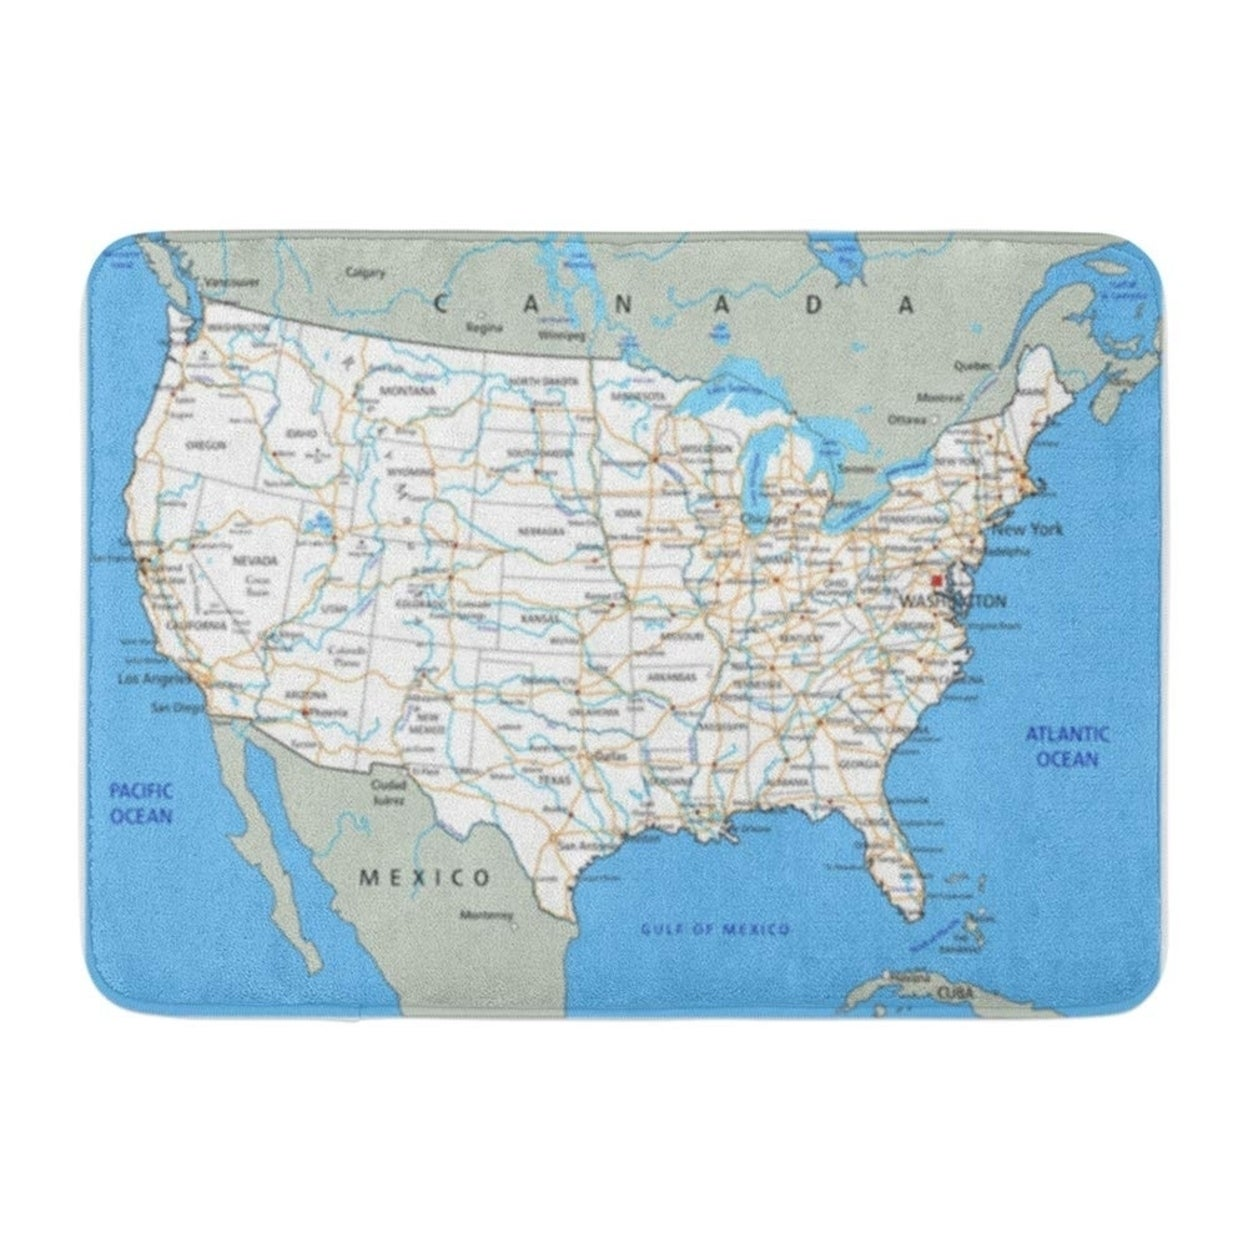 Shop Usa High Detailed United States Of America Road Map Labeling City Doormat Floor Rug Bath Mat 30x18 Inch Multi On Sale Overstock 31776898